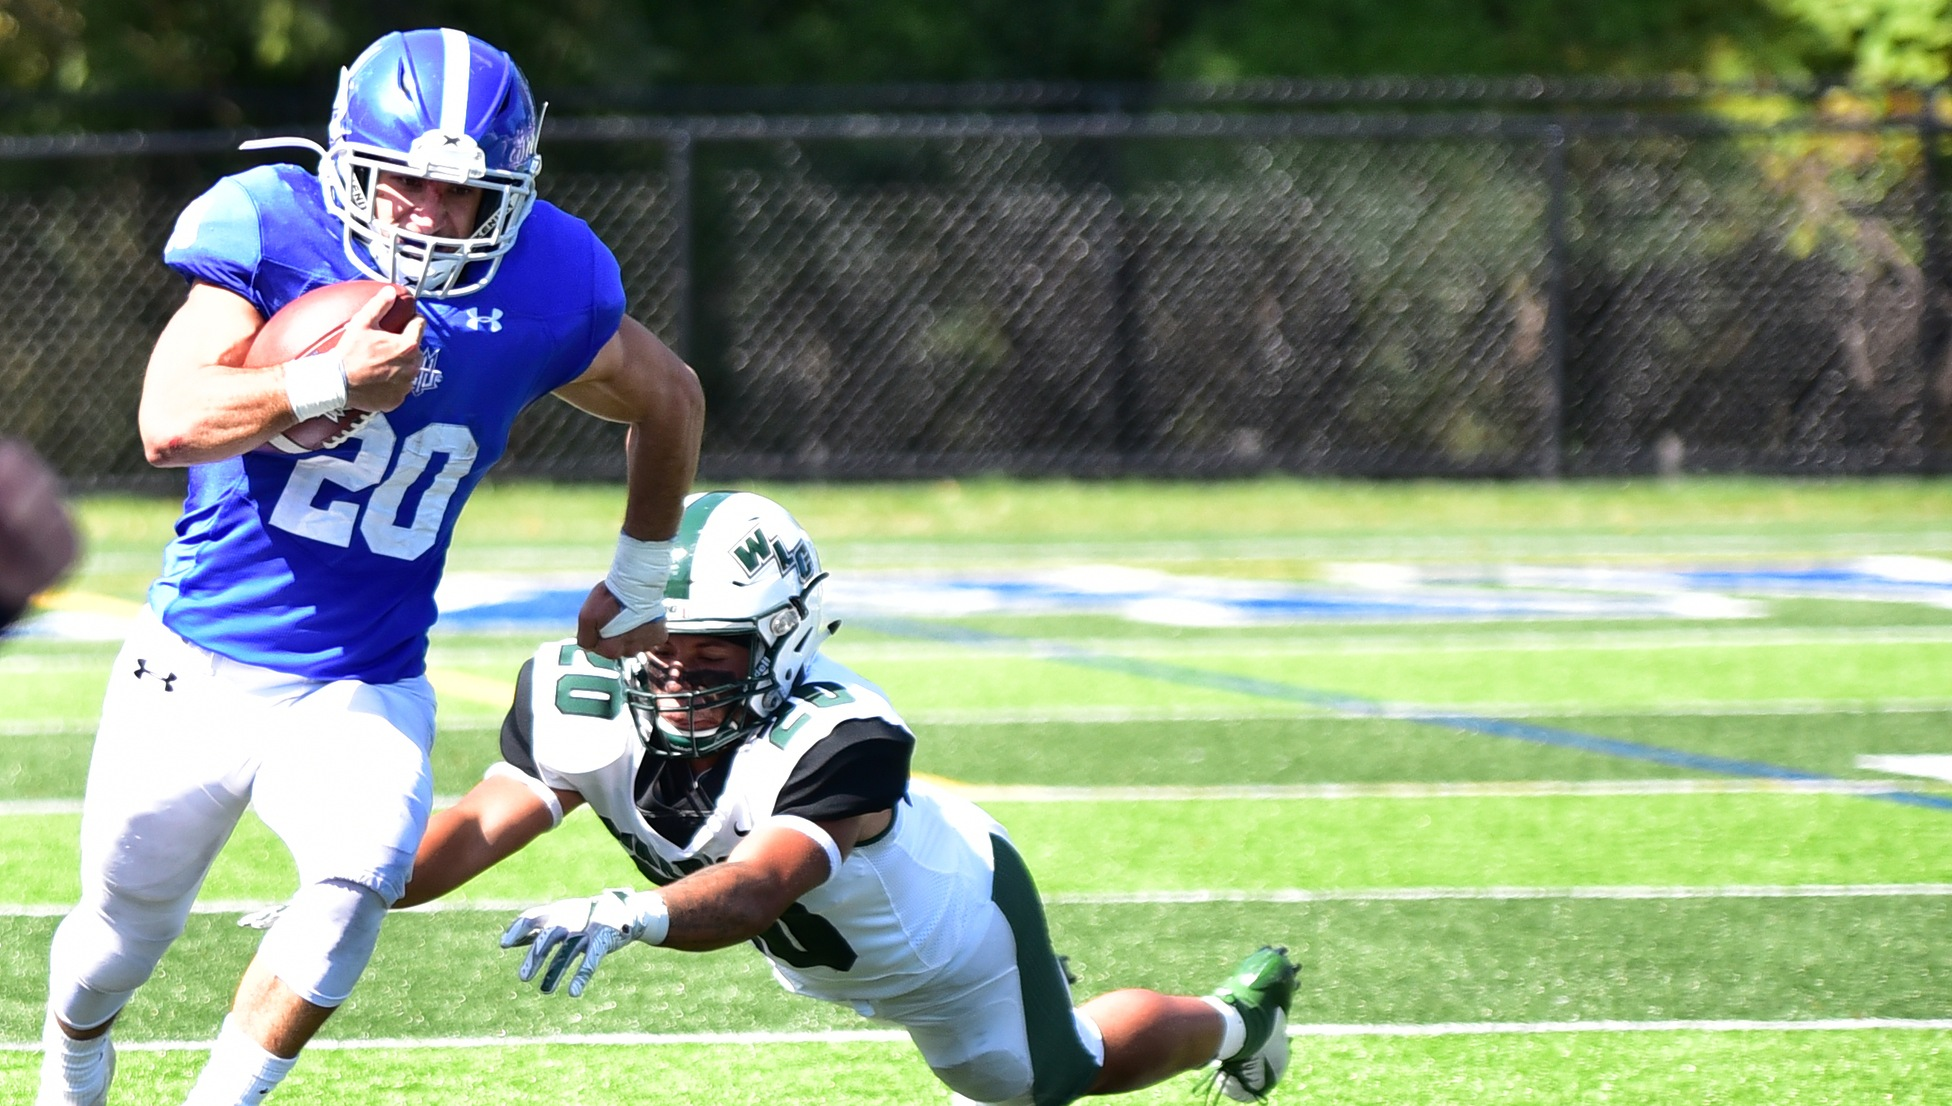 Lawrence Tech Dominates Wisconsin Lutheran 34-14 with Record Setting Offensive Performance